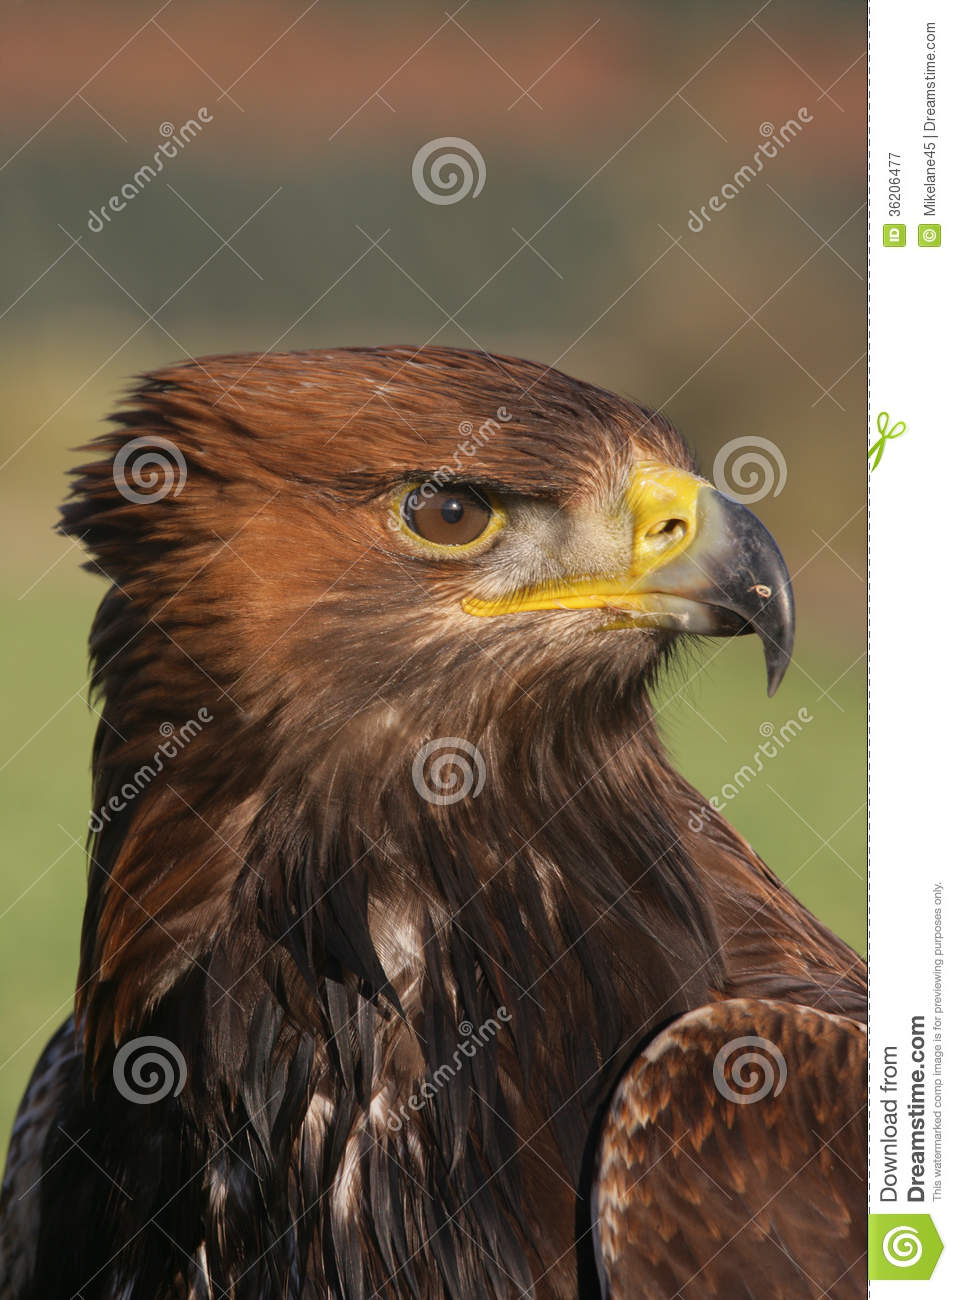 golden eagle senior singles Singles from common courtesy right back at it again released: november 11, 2013 end of me released: march 25, 2014 the second episode, golden eagle.